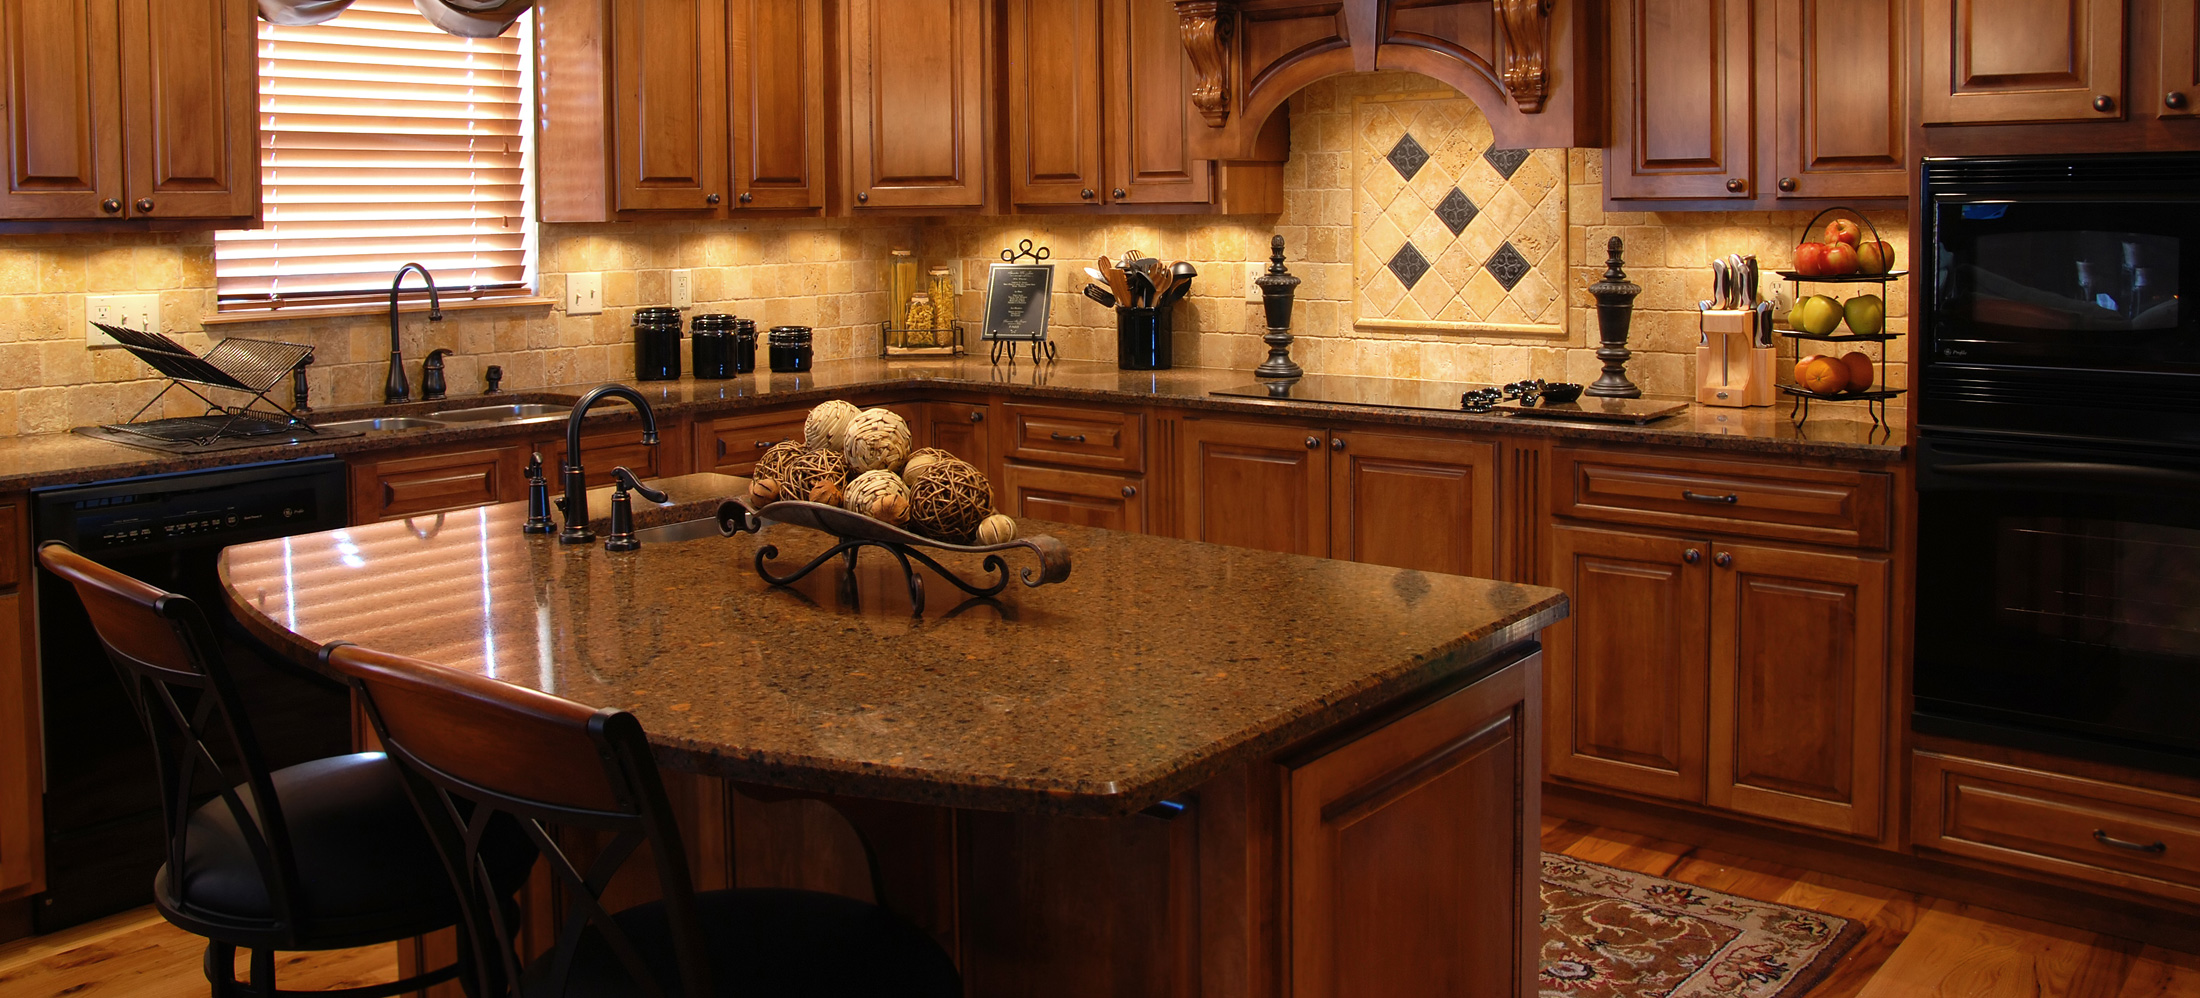 Countertops, Countertop Installation & Options: Sioux Falls ...